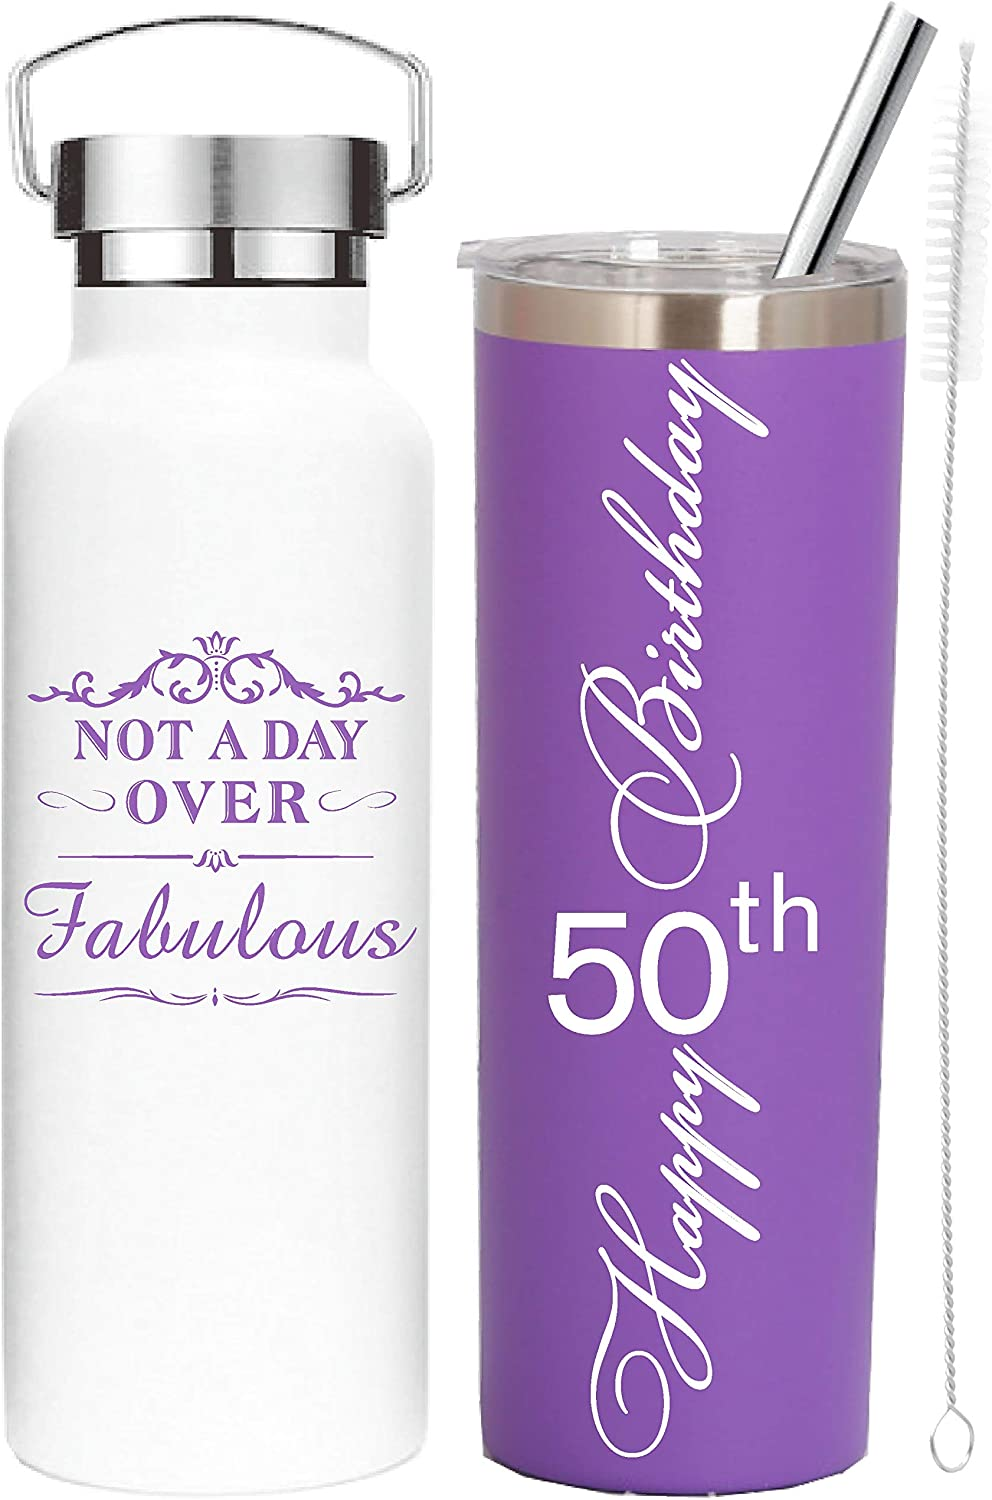 50 Birthday Gifts Women, 50th Birthday Gift Woman, 50th Birthday Gifts for Women, 50th Birthday Presents for Women, Gifts for Turning 50 for Women, 50th Birthday Tumbler, 50 Year Old Gifts for Women